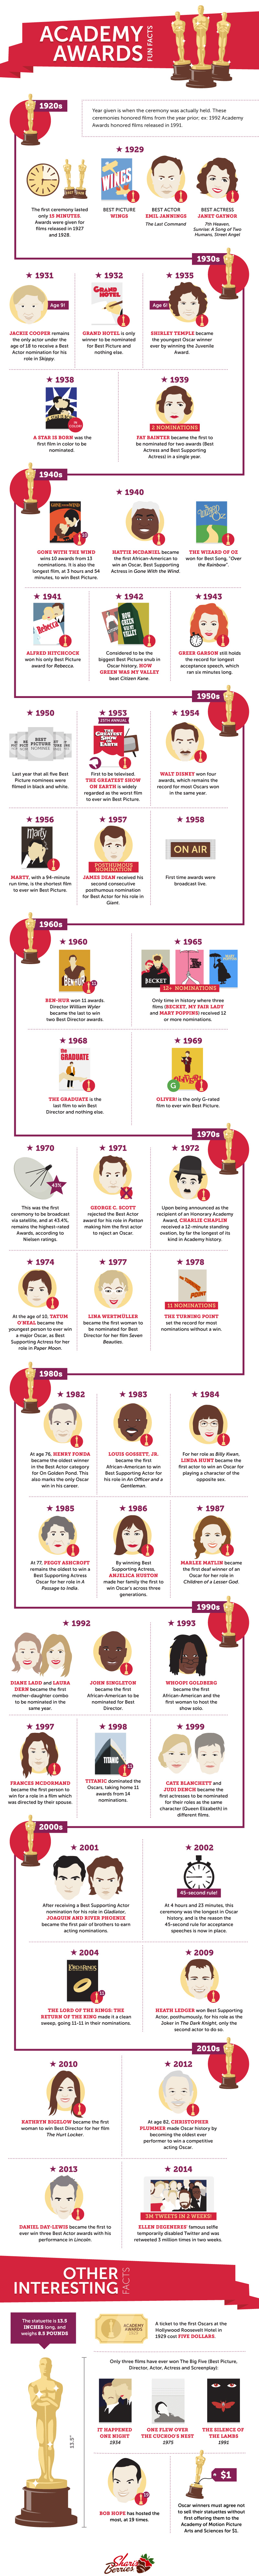 SB-AcademyAwardsFacts-Infographic